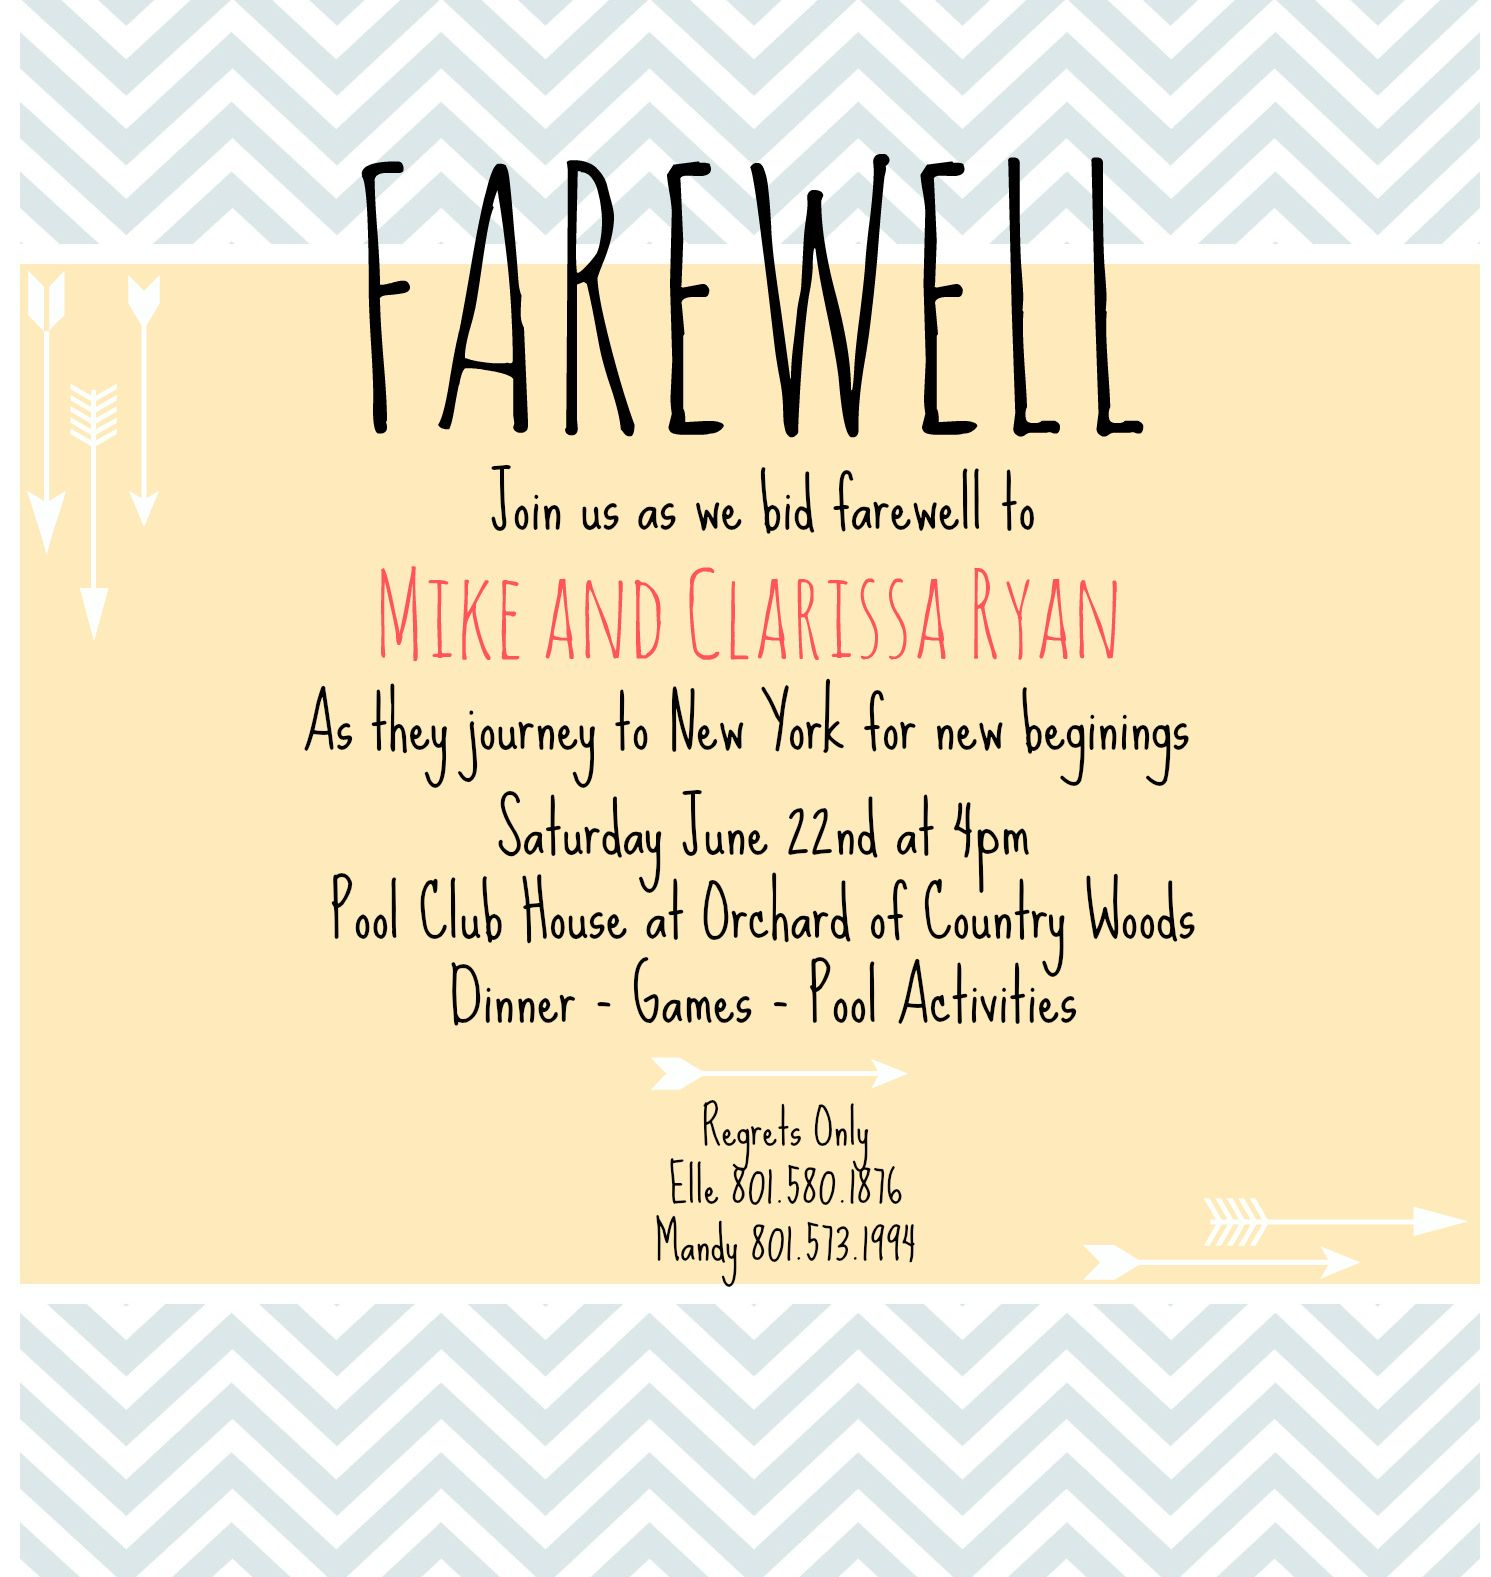 Pin by Elle Gulledge on Picmonkey creations  Farewell party